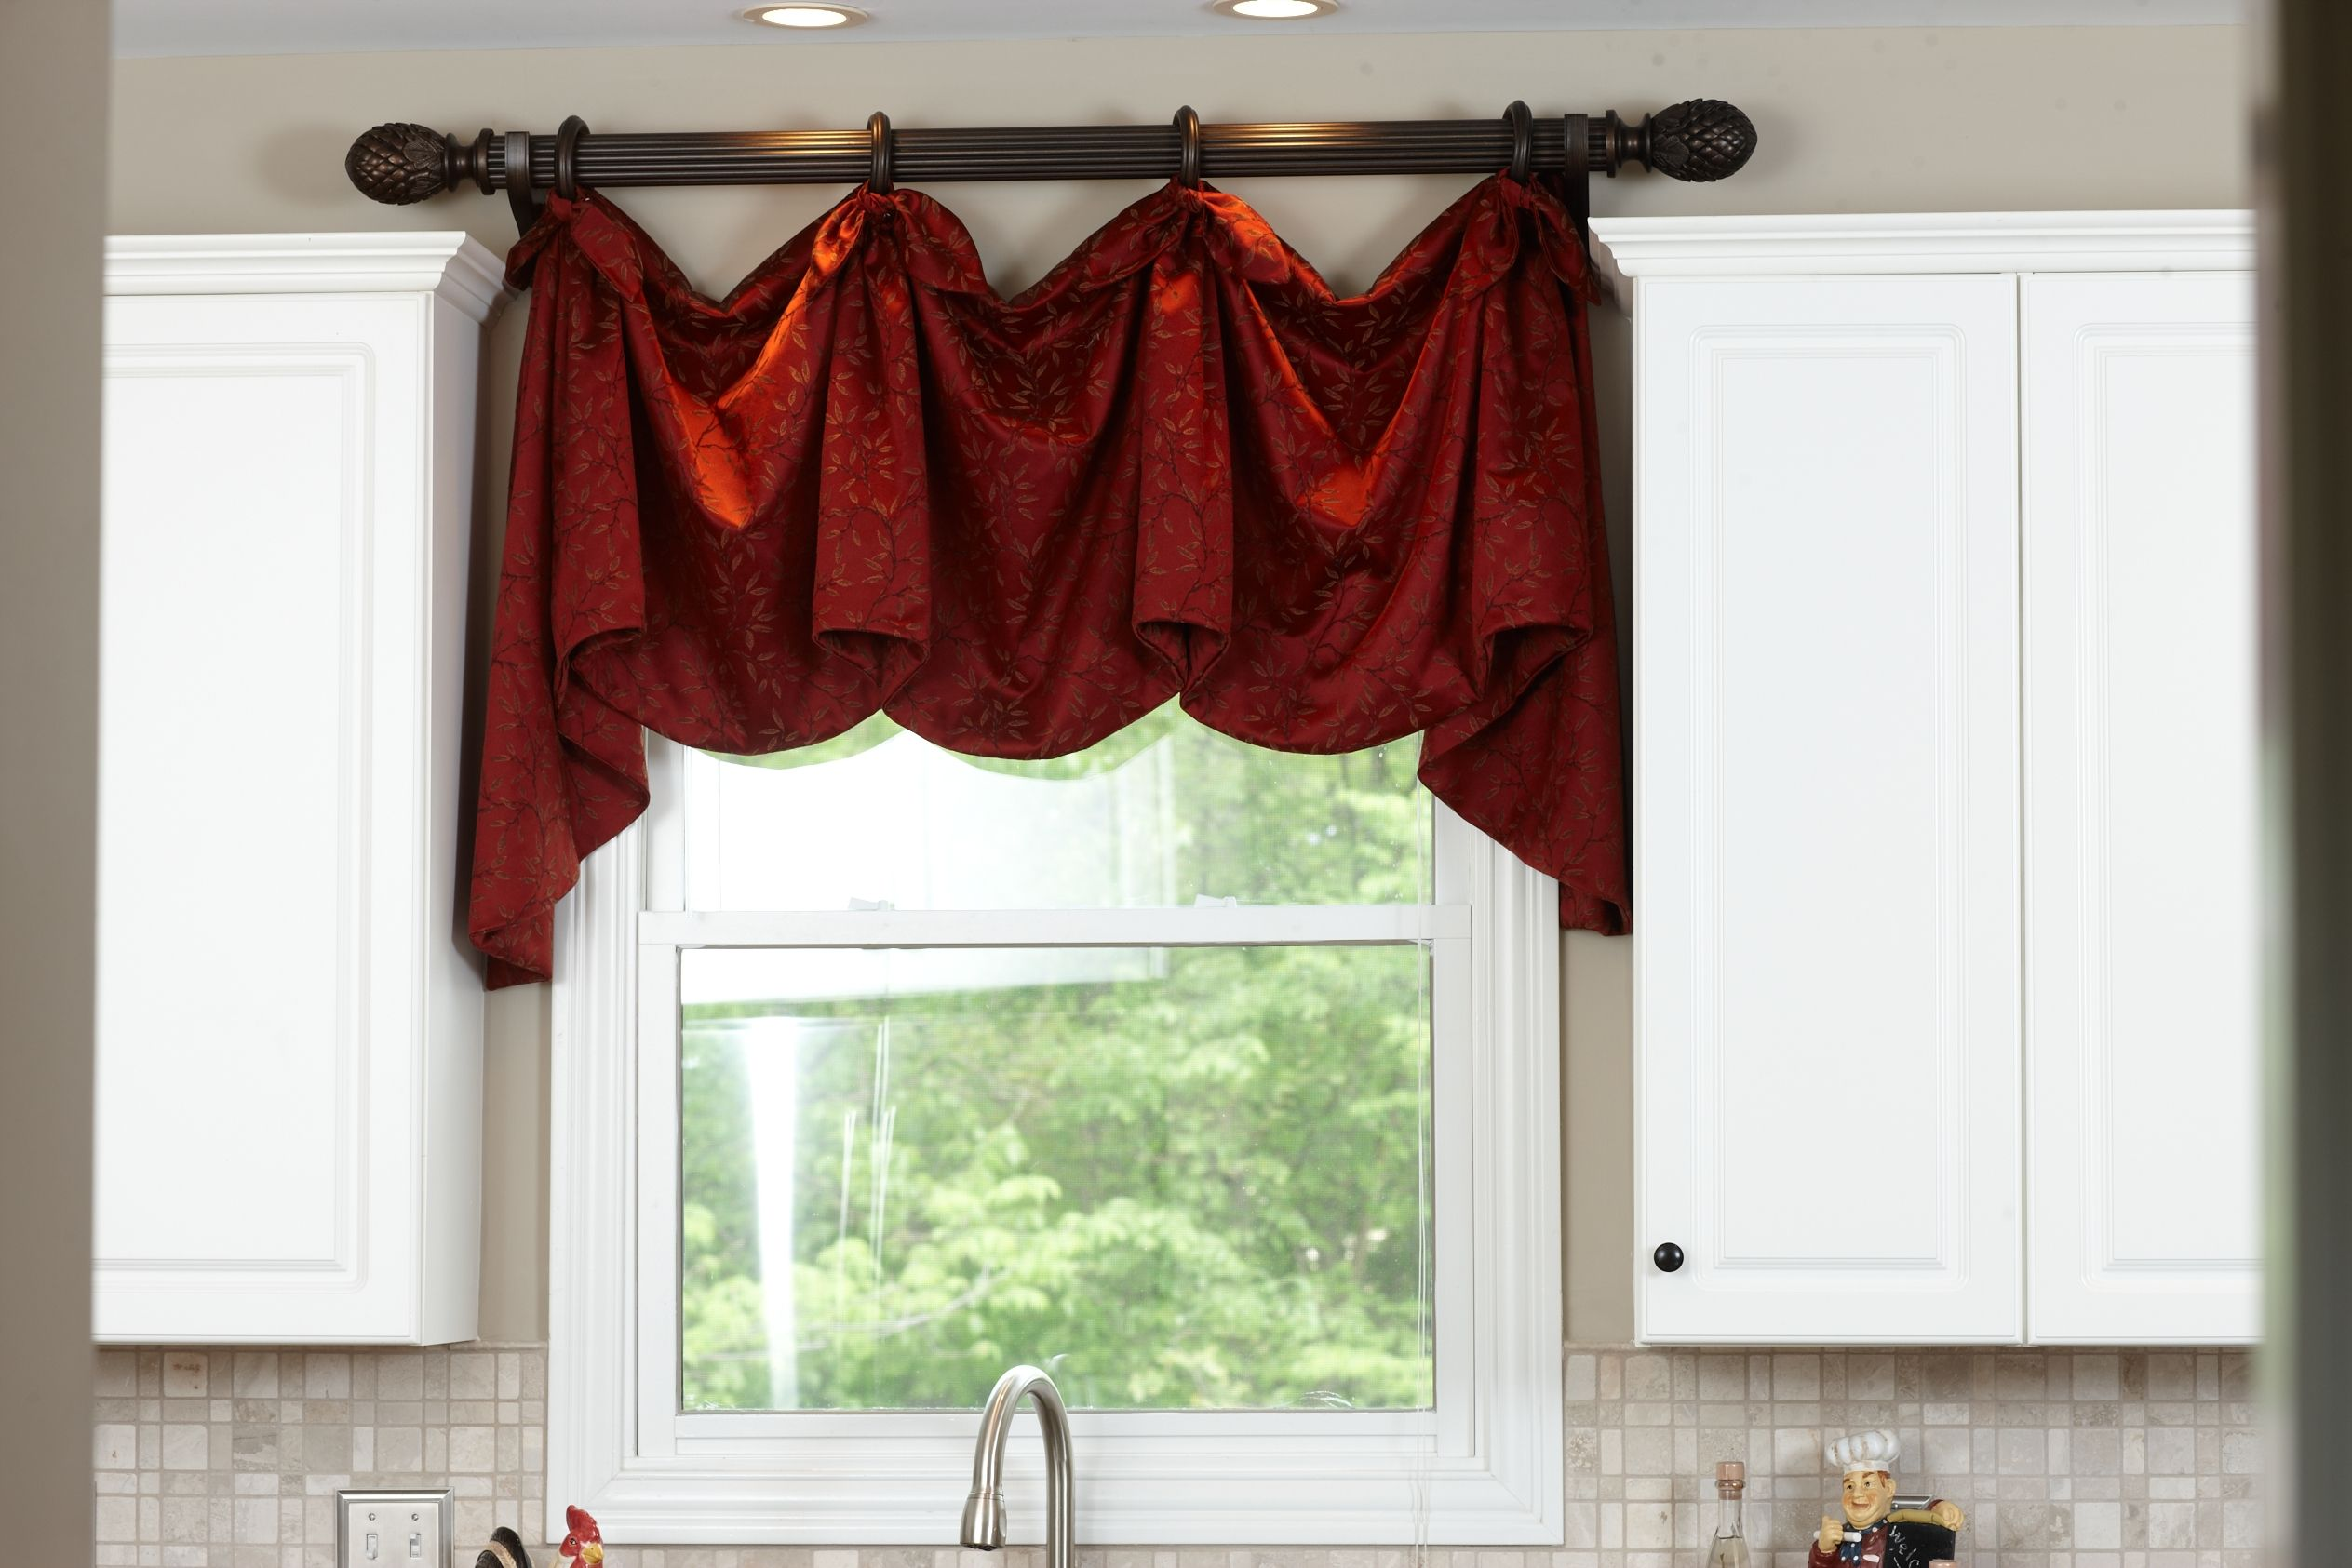 Kitchen window treatments above the sink decorative rod valance